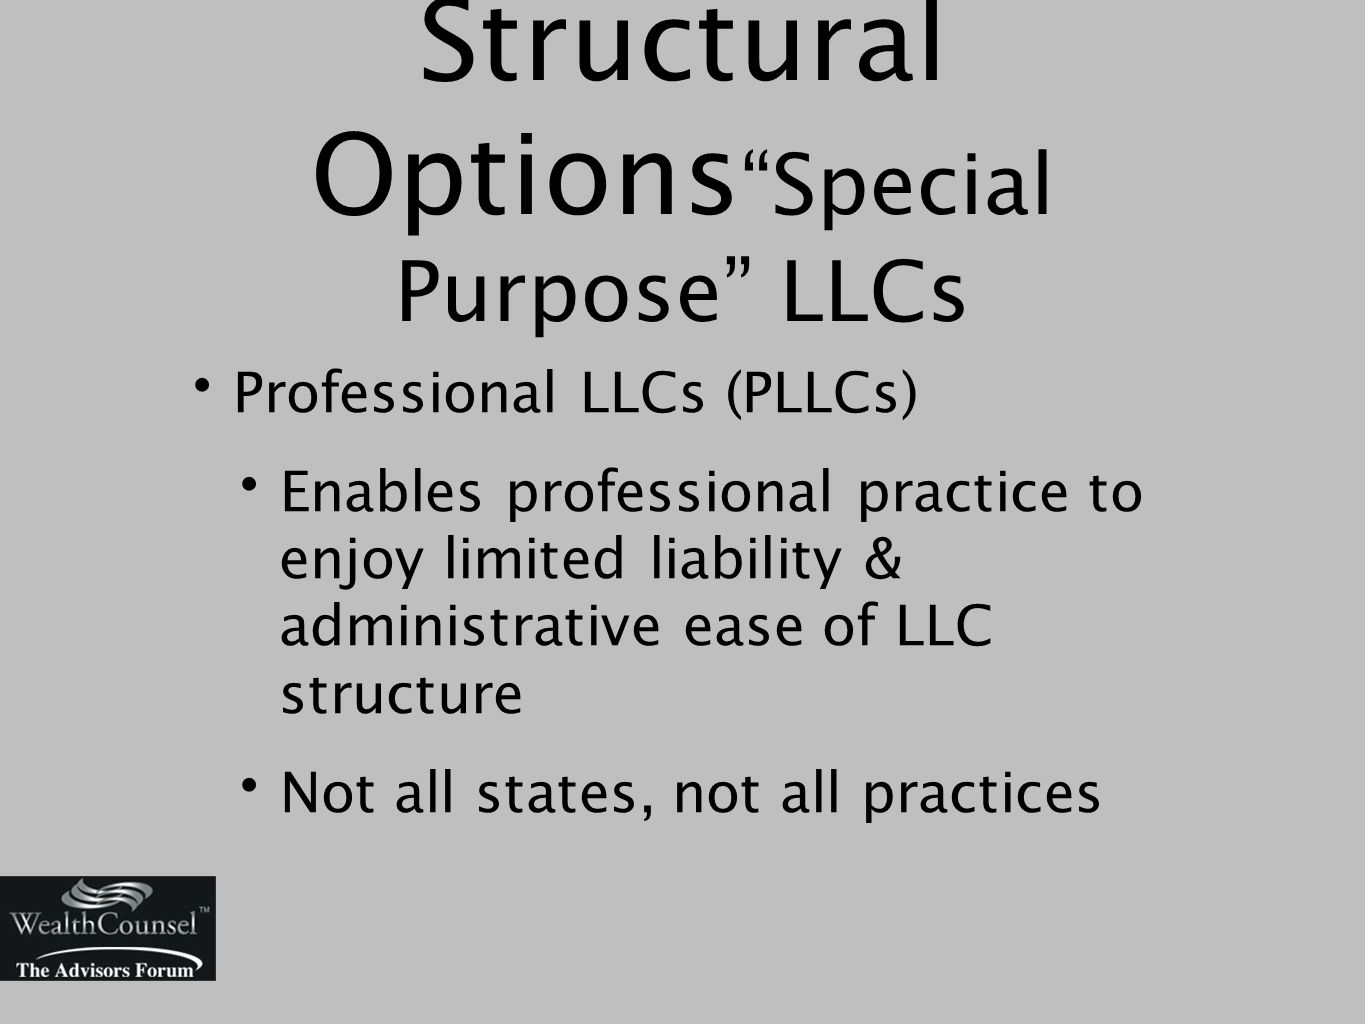 Professional LLCs (PLLCs) Enables professional practice to enjoy limited liability & administrative ease of LLC structure Not all states, not all practices Structural Options Special Purpose LLCs